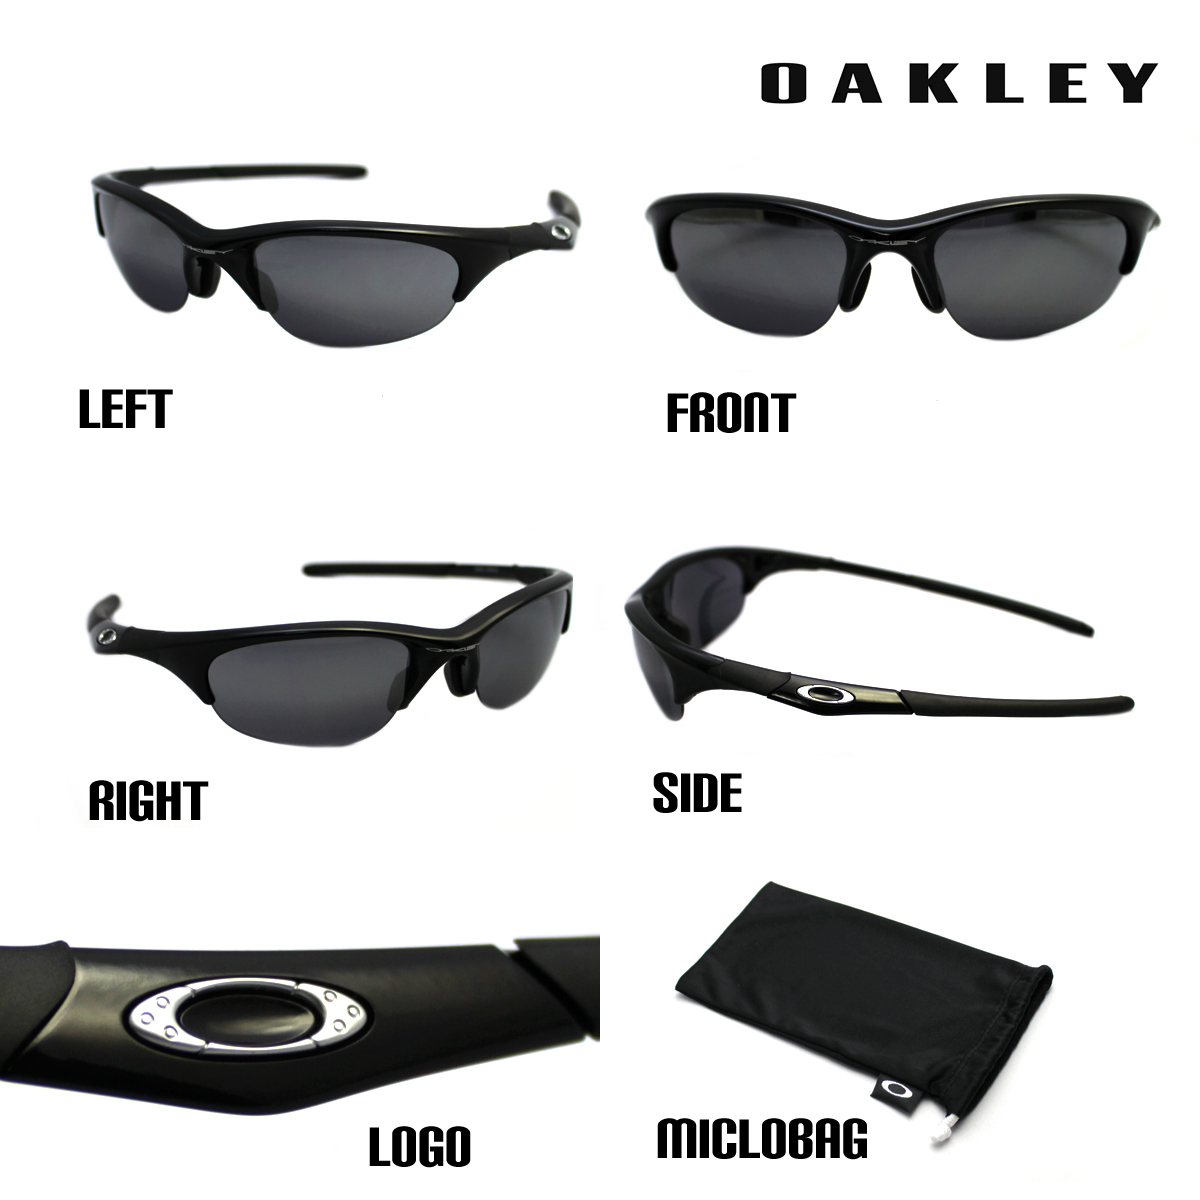 Oakley sunglasses asian fit - 03 614 J Oakley Sunglasses Half Jacket Asian Fit Oakley Half Jacket Asian Fit Sport